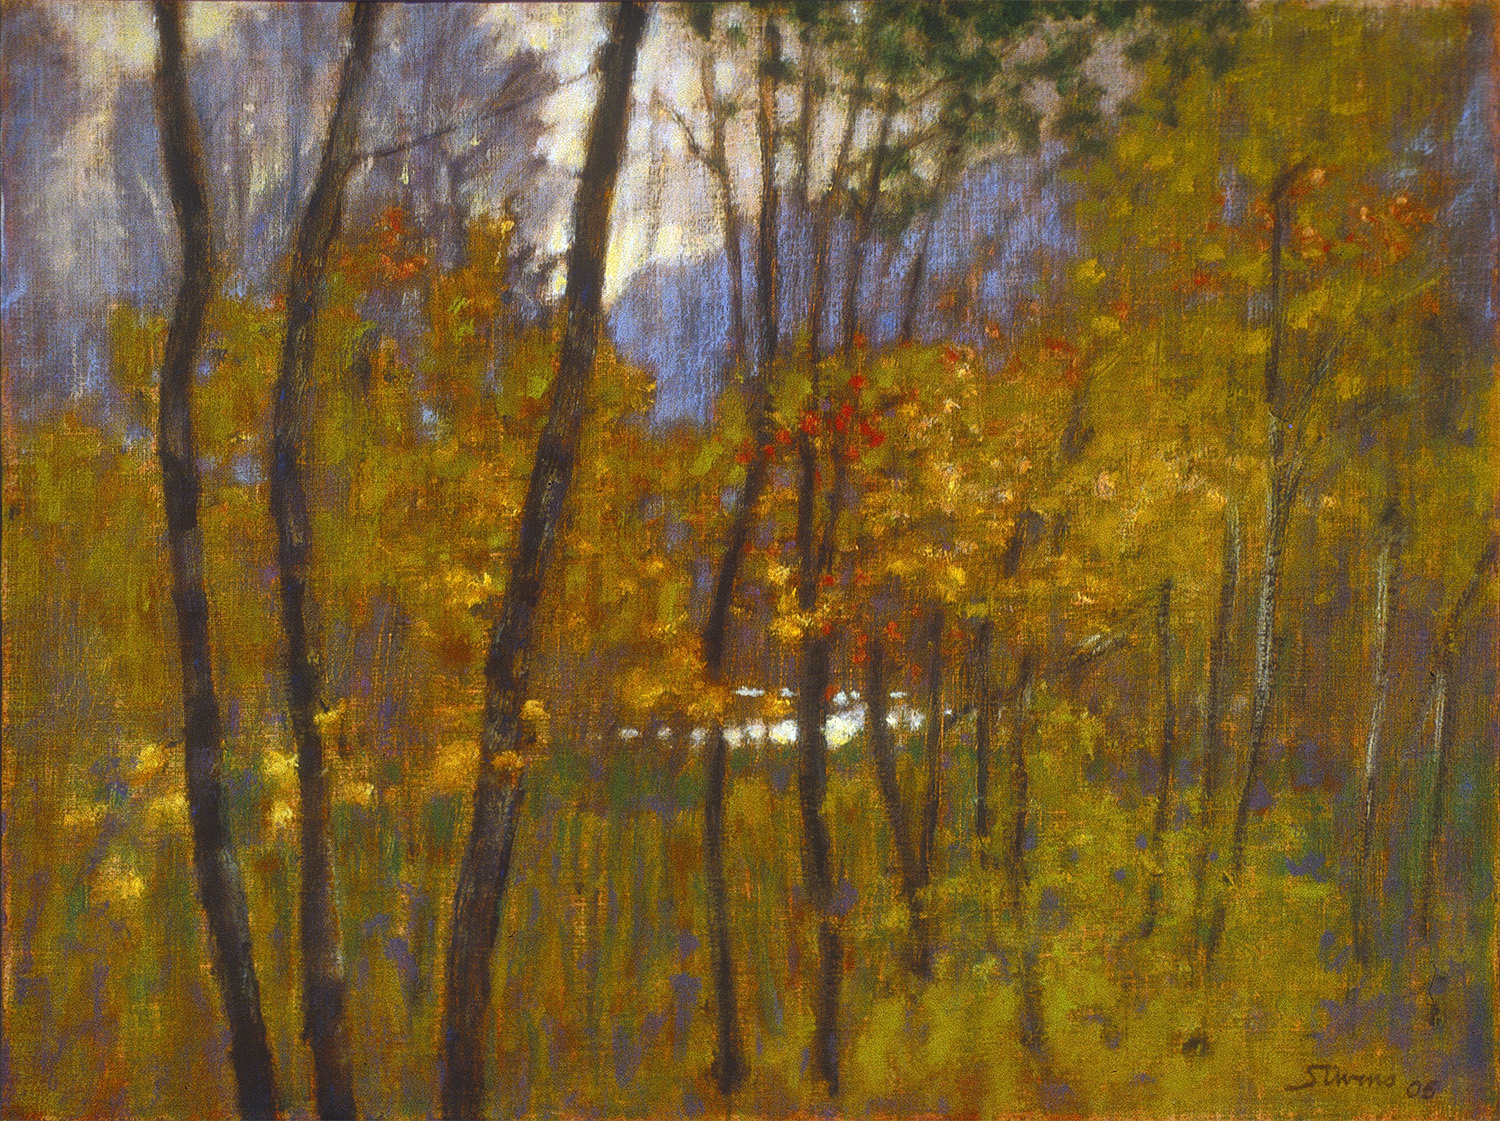 Rogue River   | oil on linen | 12 x 16"